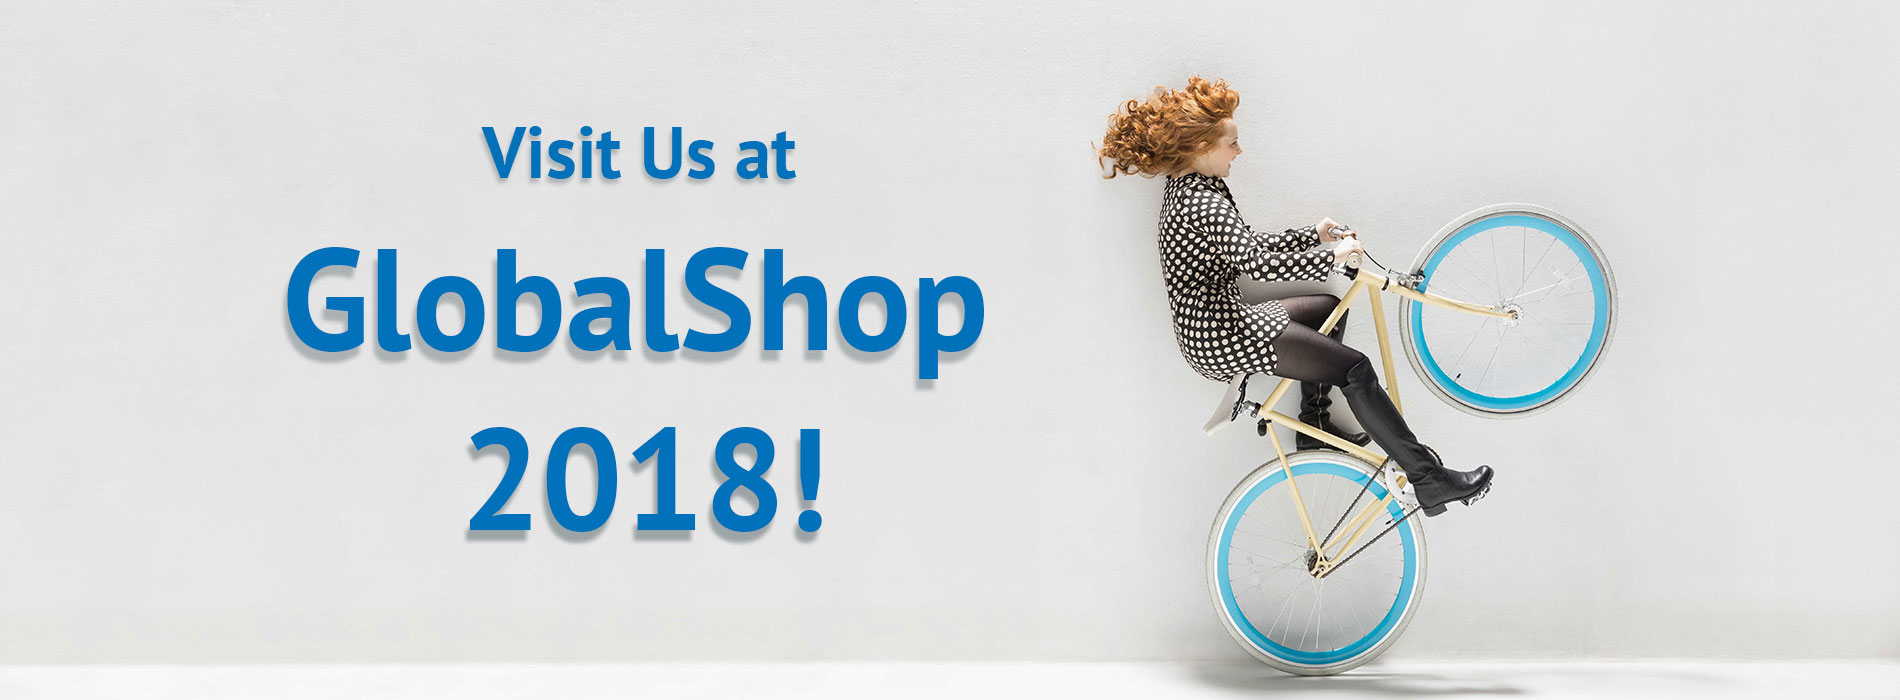 Book Now to See Brant InStore at GlobalShop 2018!